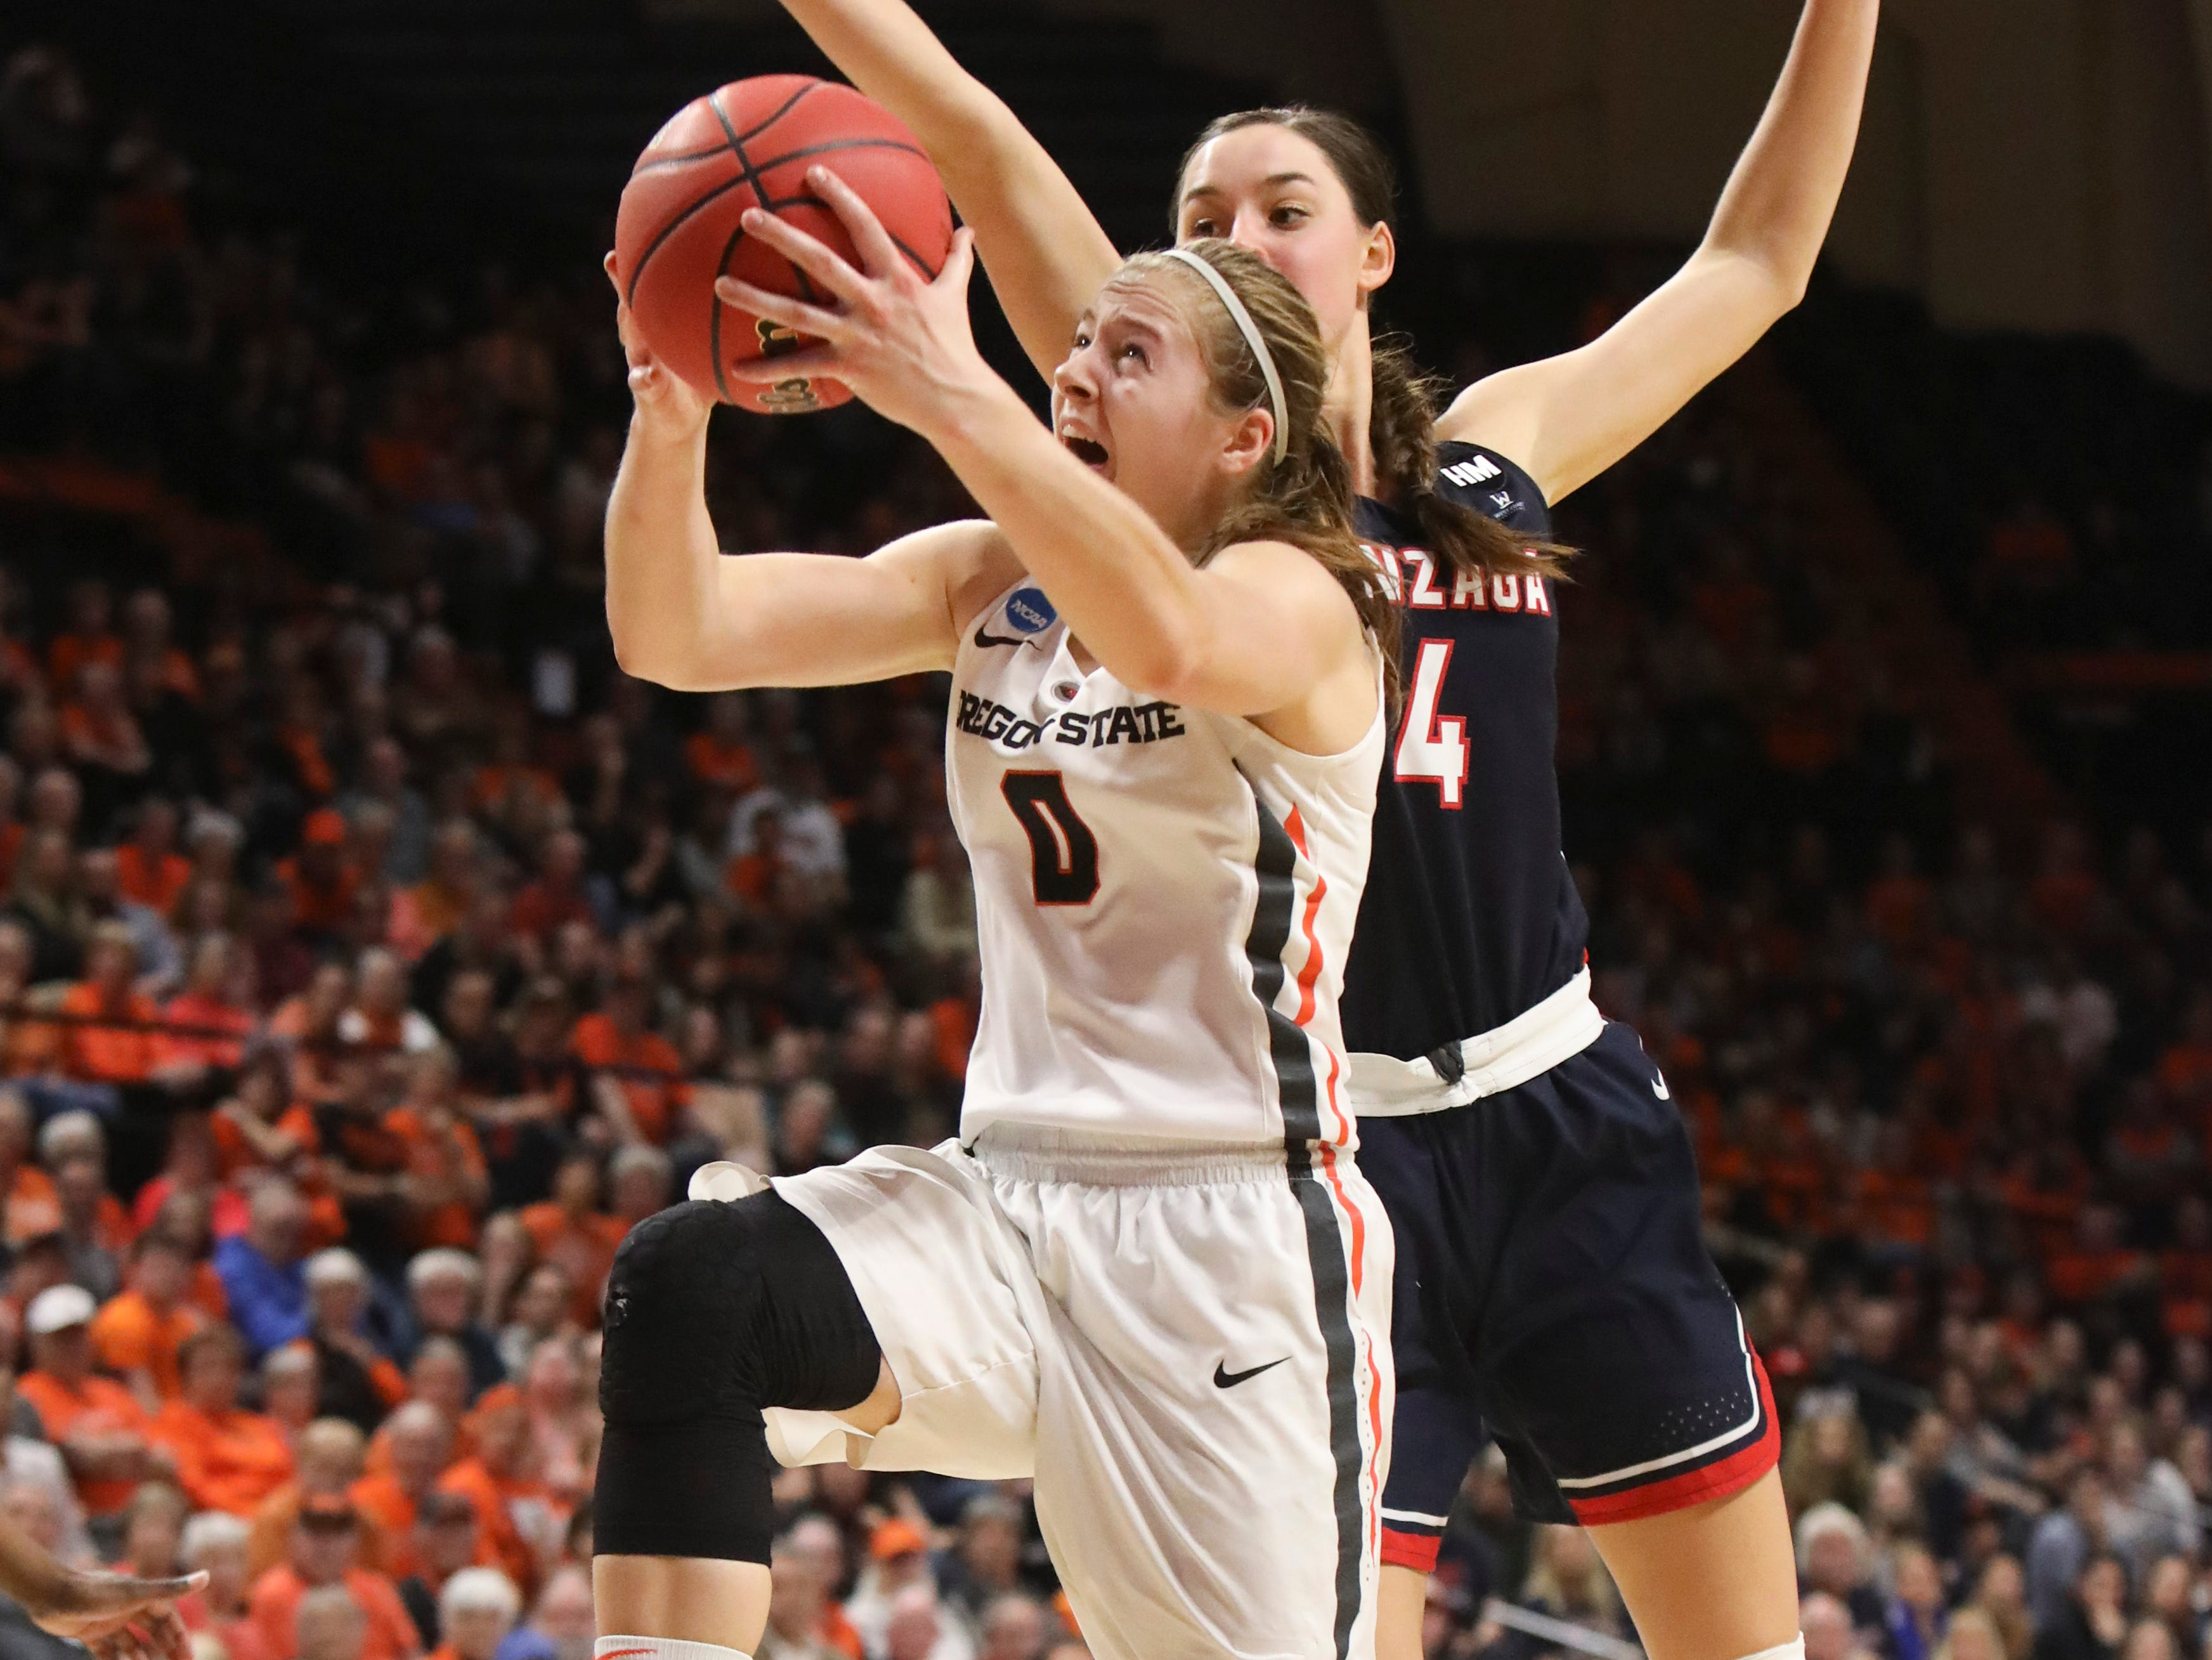 Oregon State's Mikayla Pivec (0) drives to the basket despite in front of Gonzaga's LeeAnne Wirth (4) during the second half of a second-round game of the NCAA women's college basketball tournament in Corvallis, Ore., Monday, March 25, 2019. Oregon State won 76-70. (AP Photo/Amanda Loman)